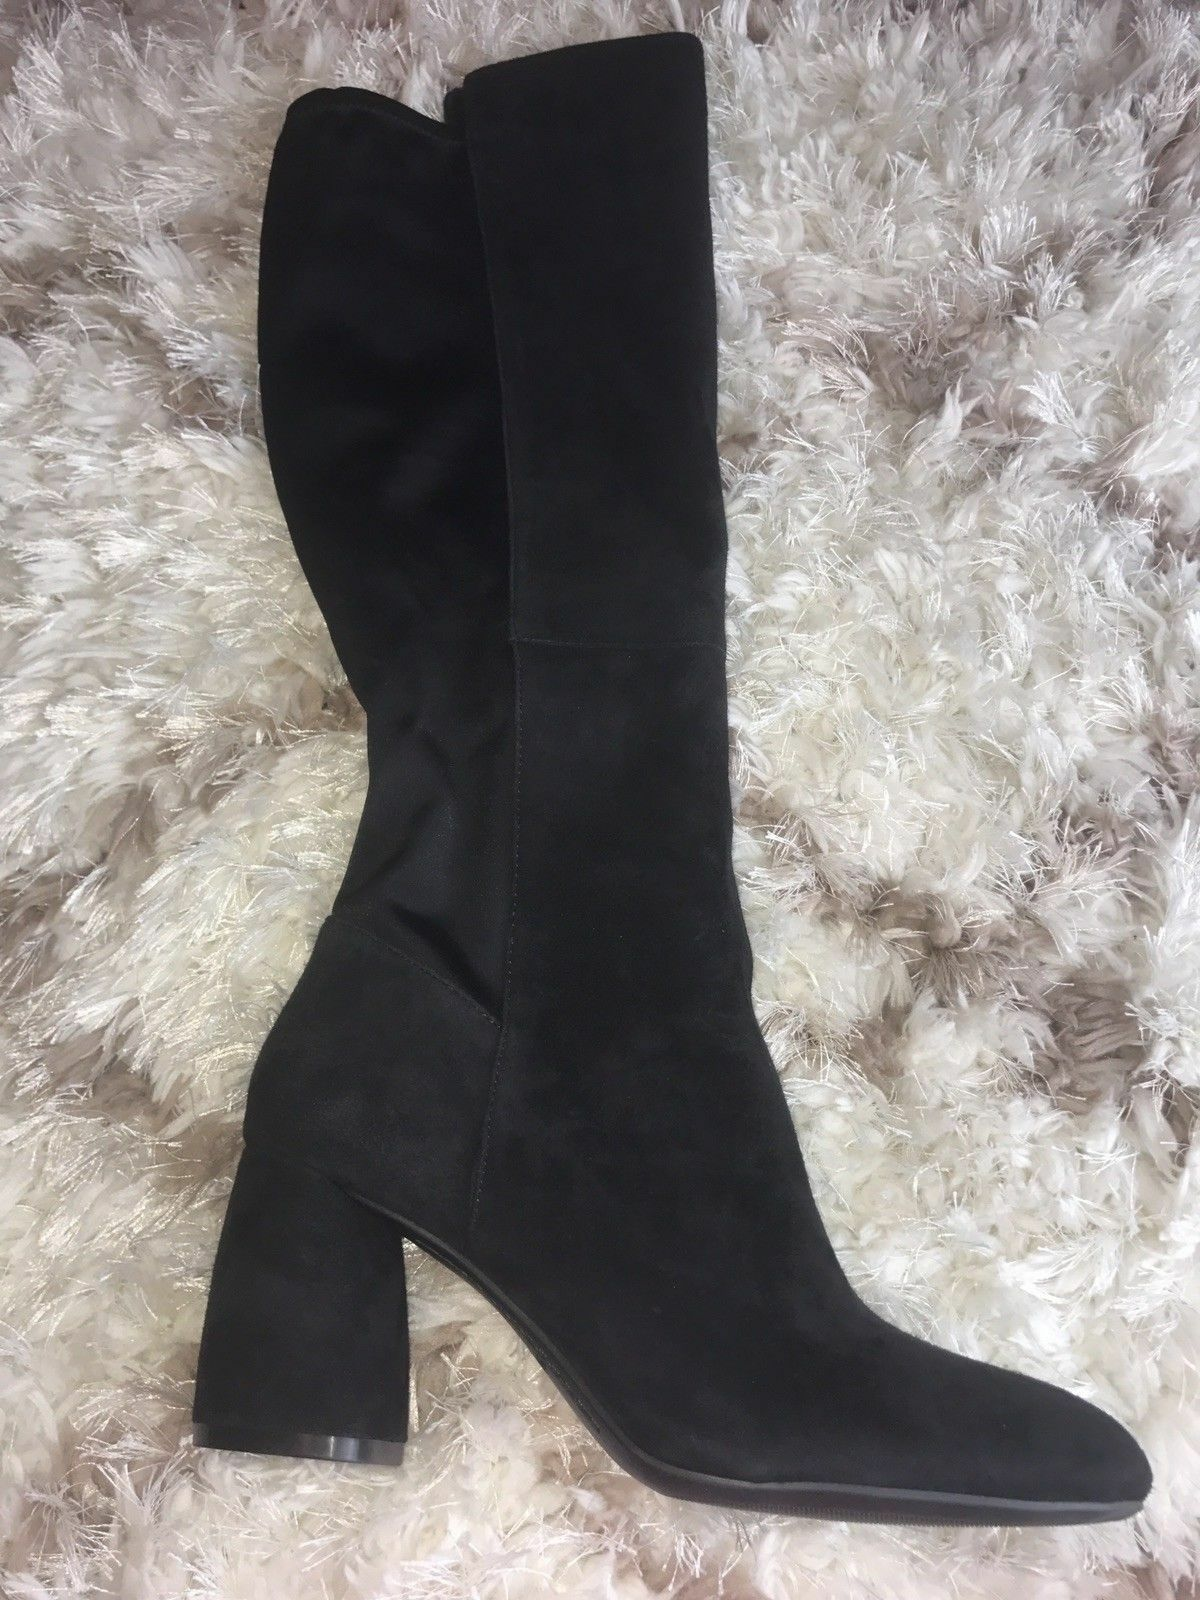 Nine West Kerianna Black Black Black Pull Over The Knee Fashion Boots 8.5 Suede Block Heels c31461